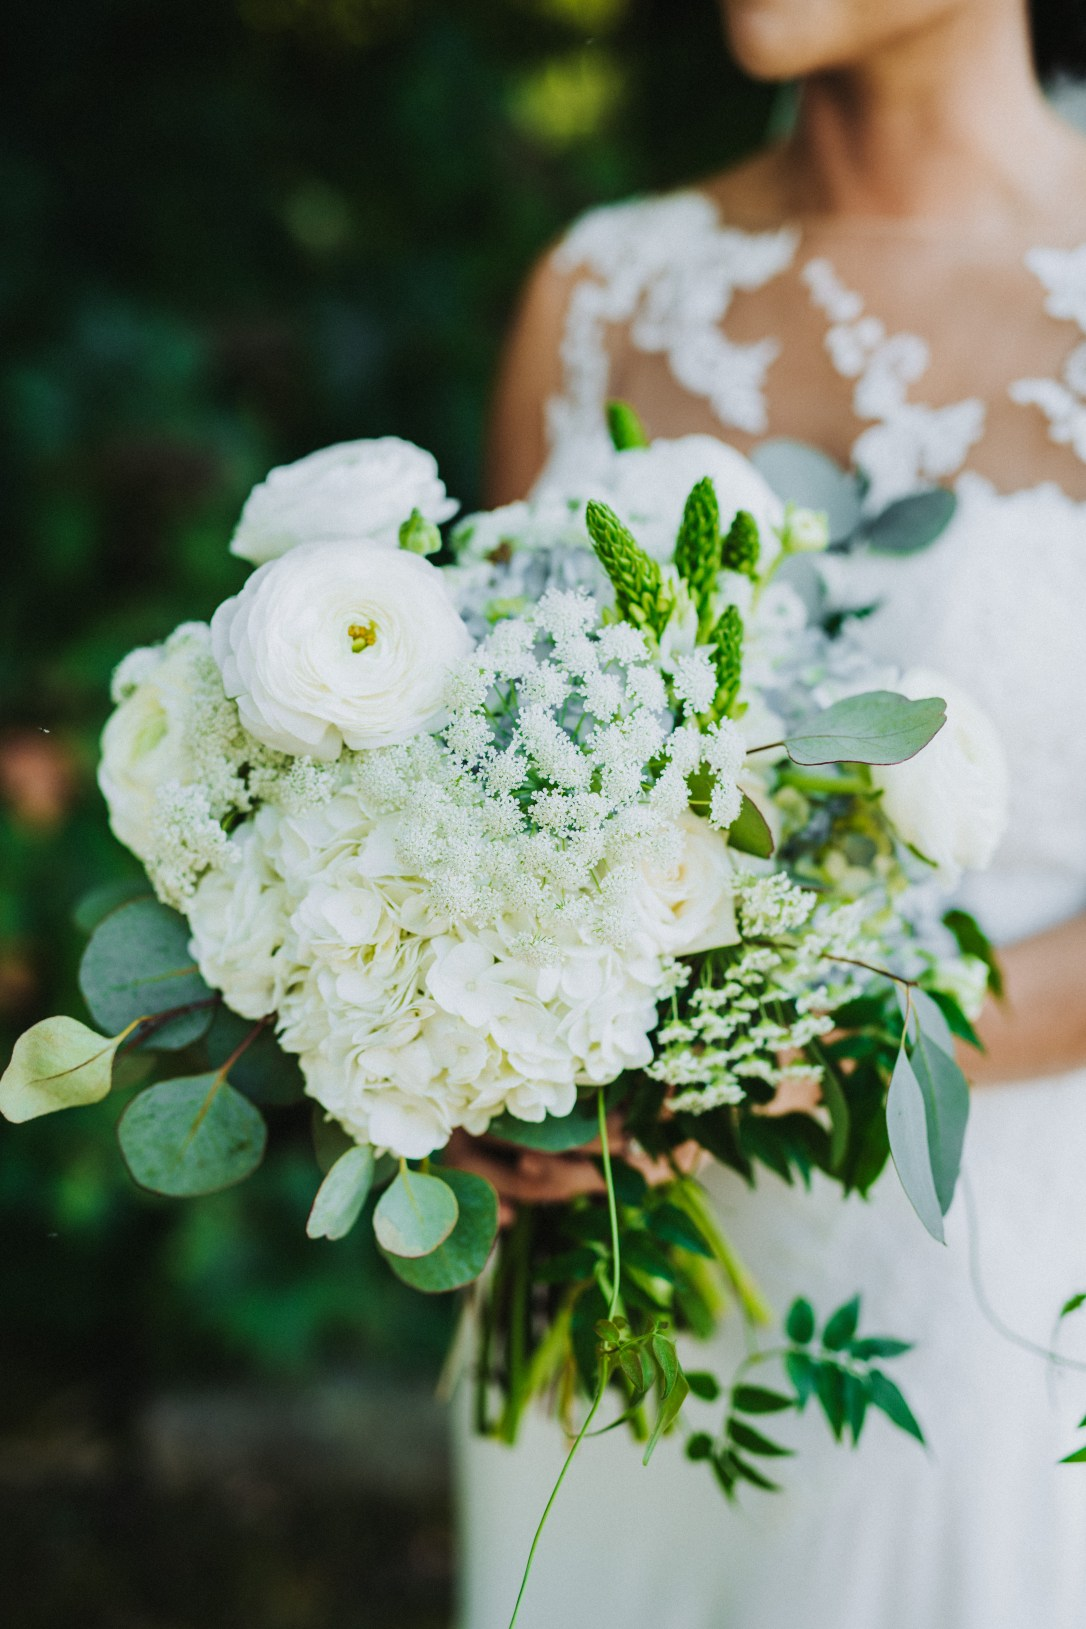 Romantic_Blue_White_Lush_Bouquet_Tennessee_River_Place_Chattanooga_Wedding_Florist_Lang_Floral_Designs_9.jpg